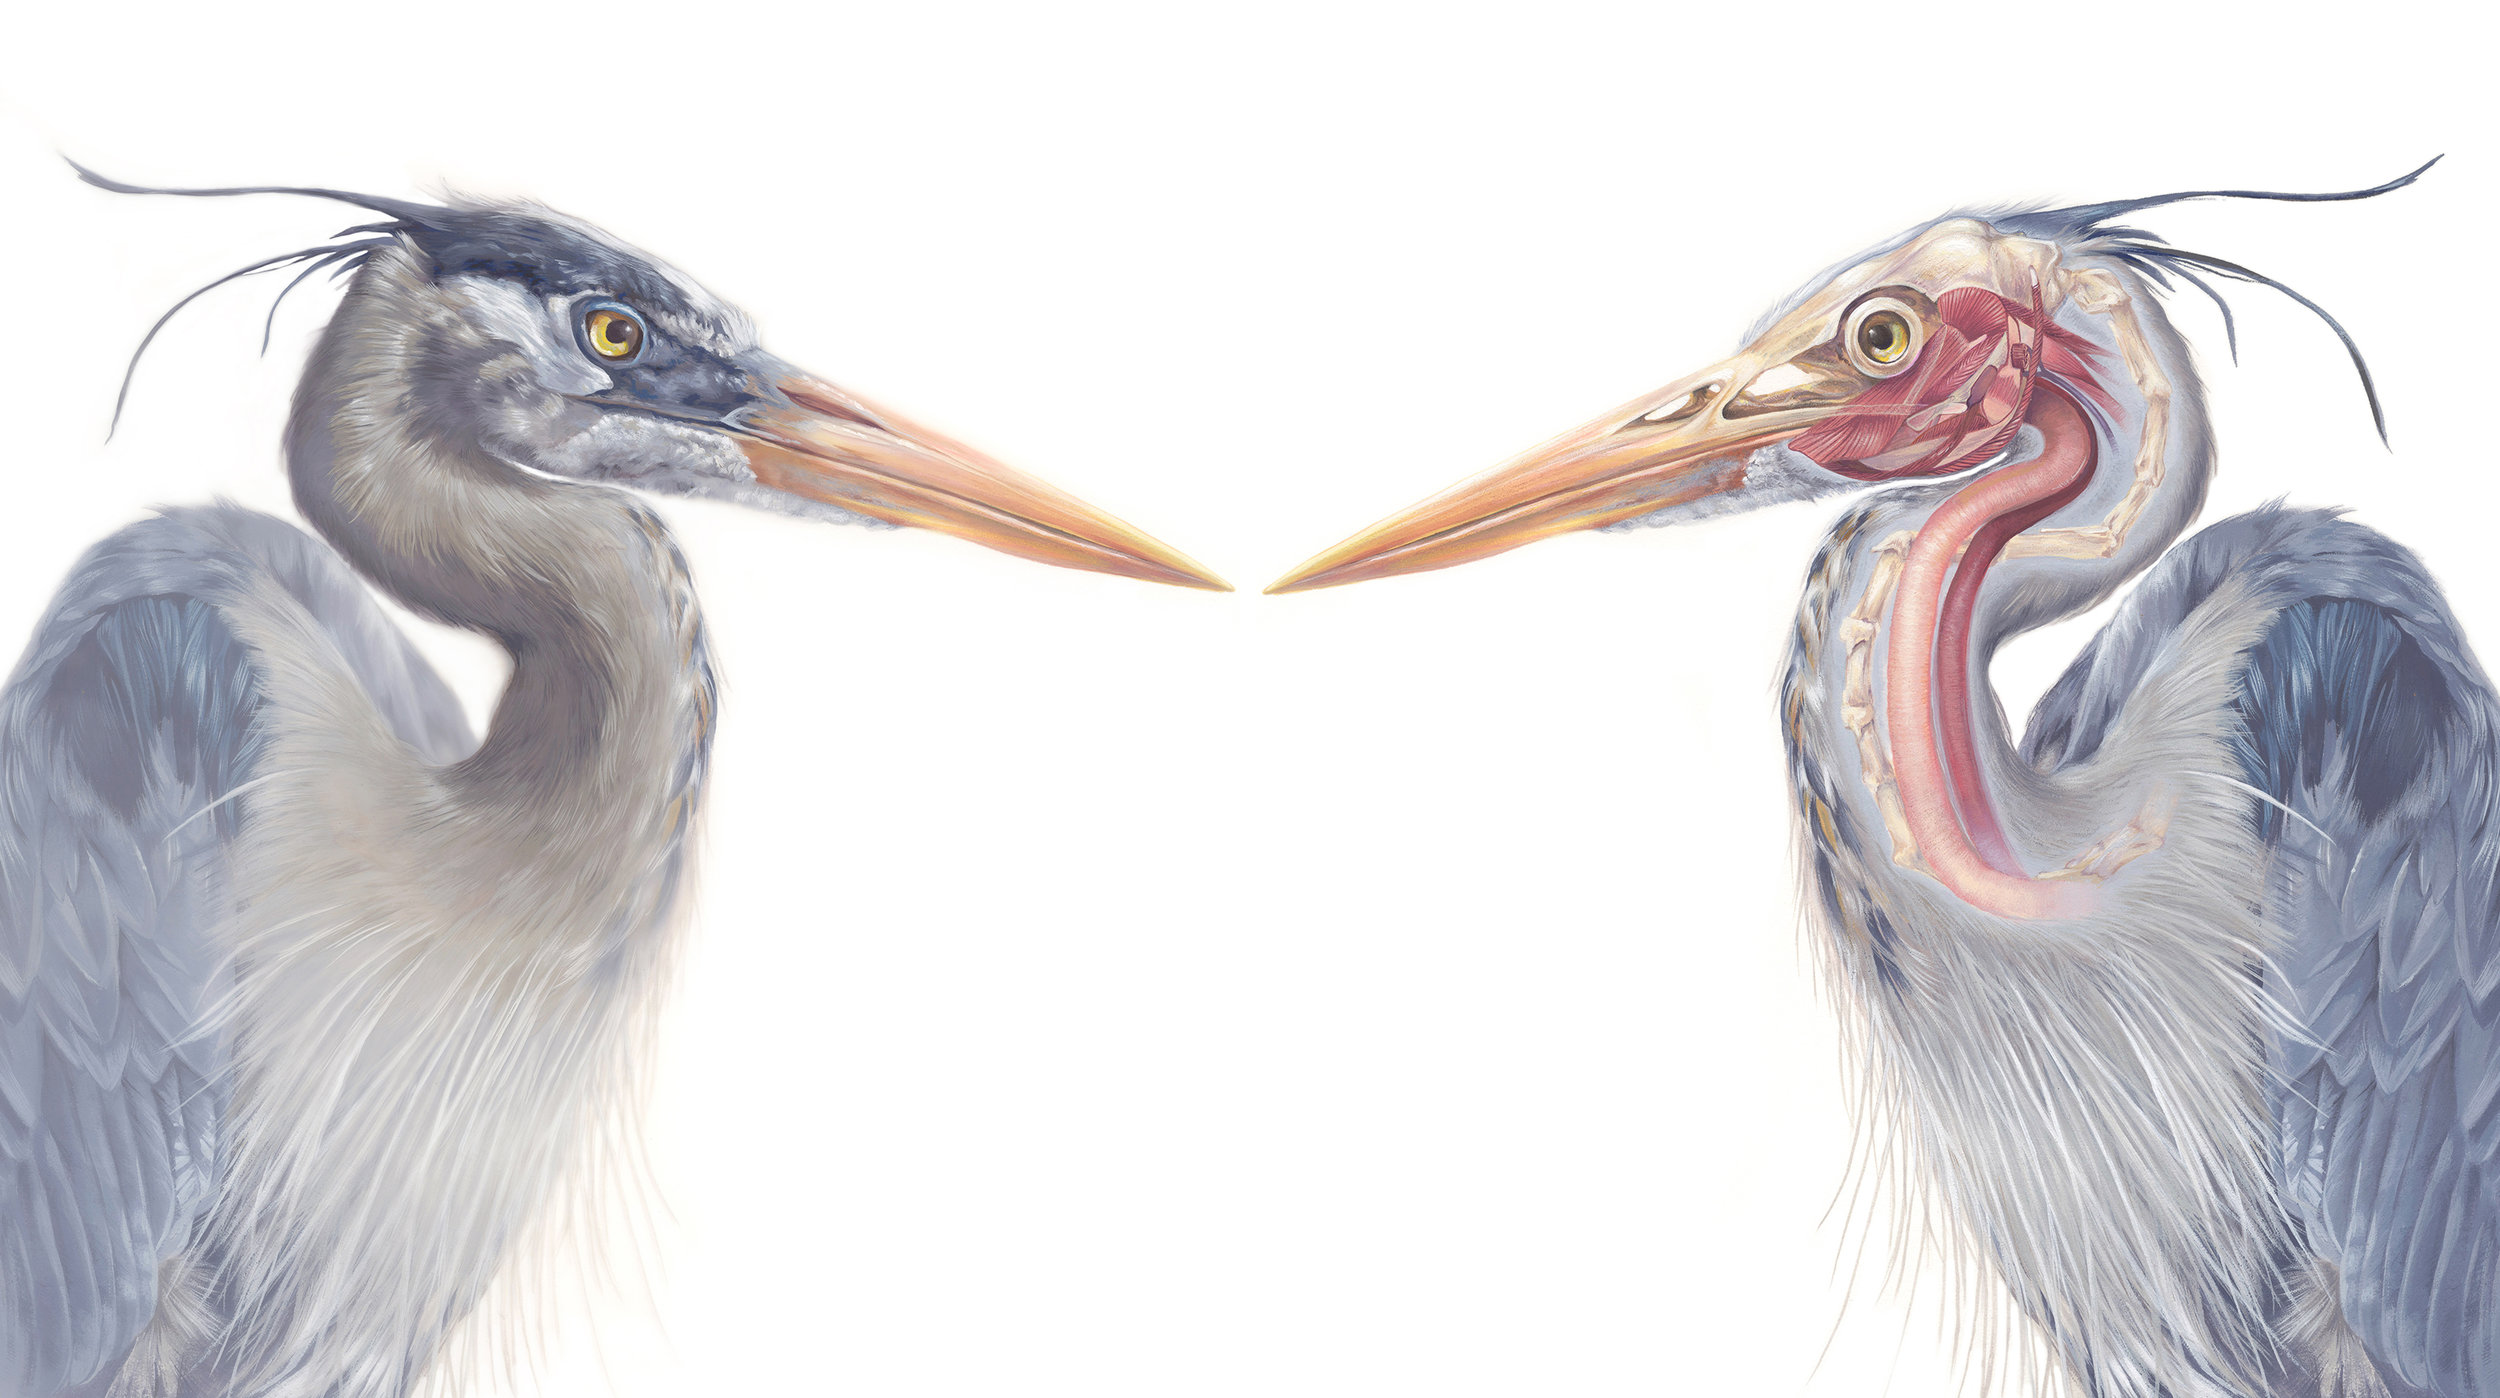 Anatomy of Great Blue Heron